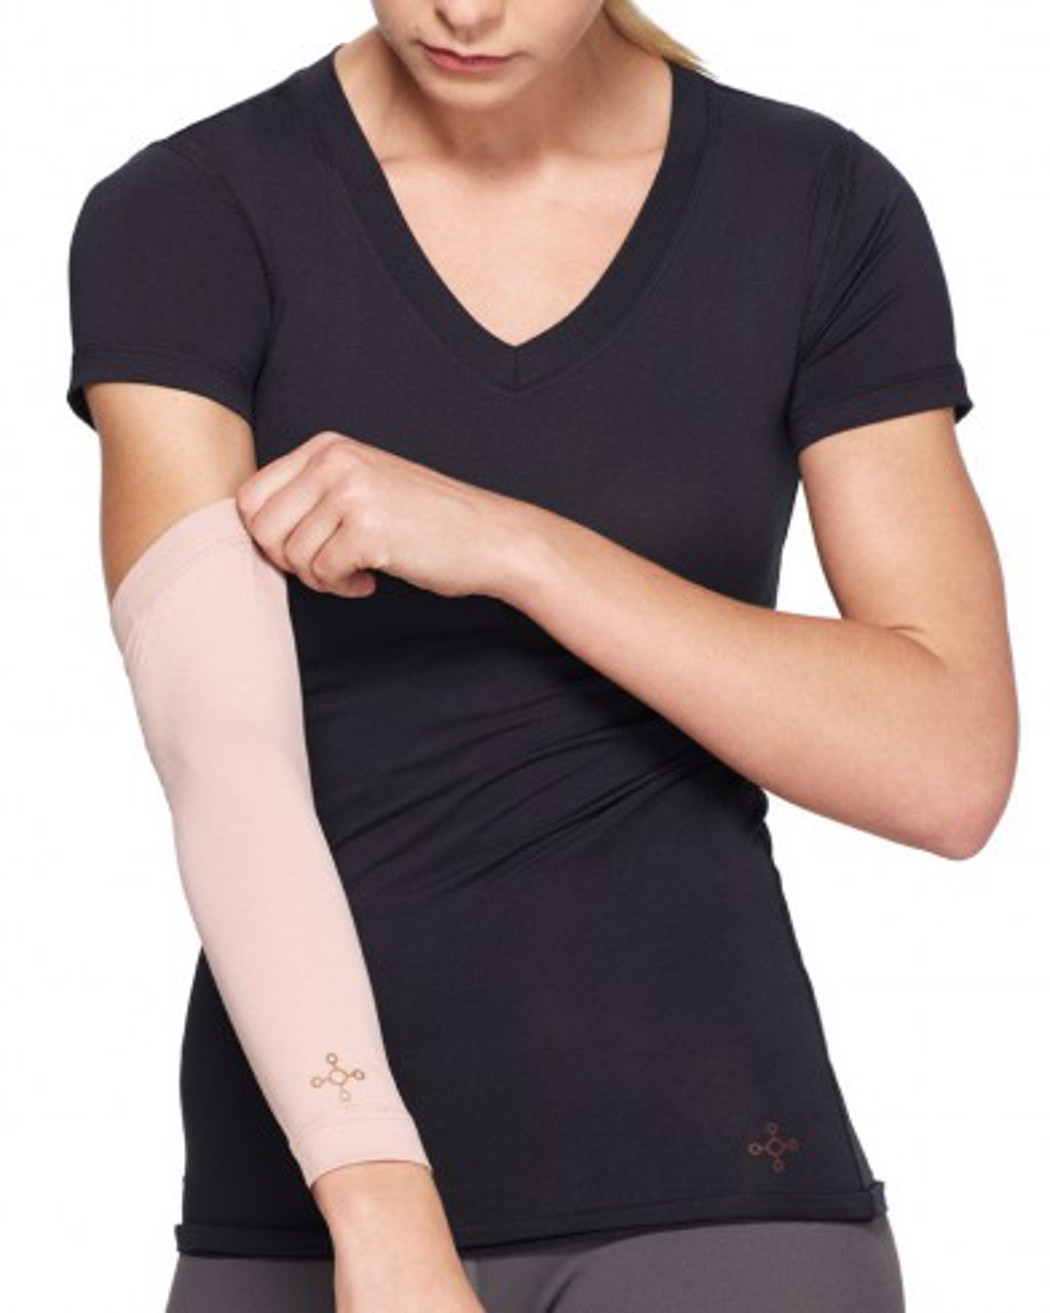 Tommie Copper Women's Core Compression Full Arm Sleeve ...